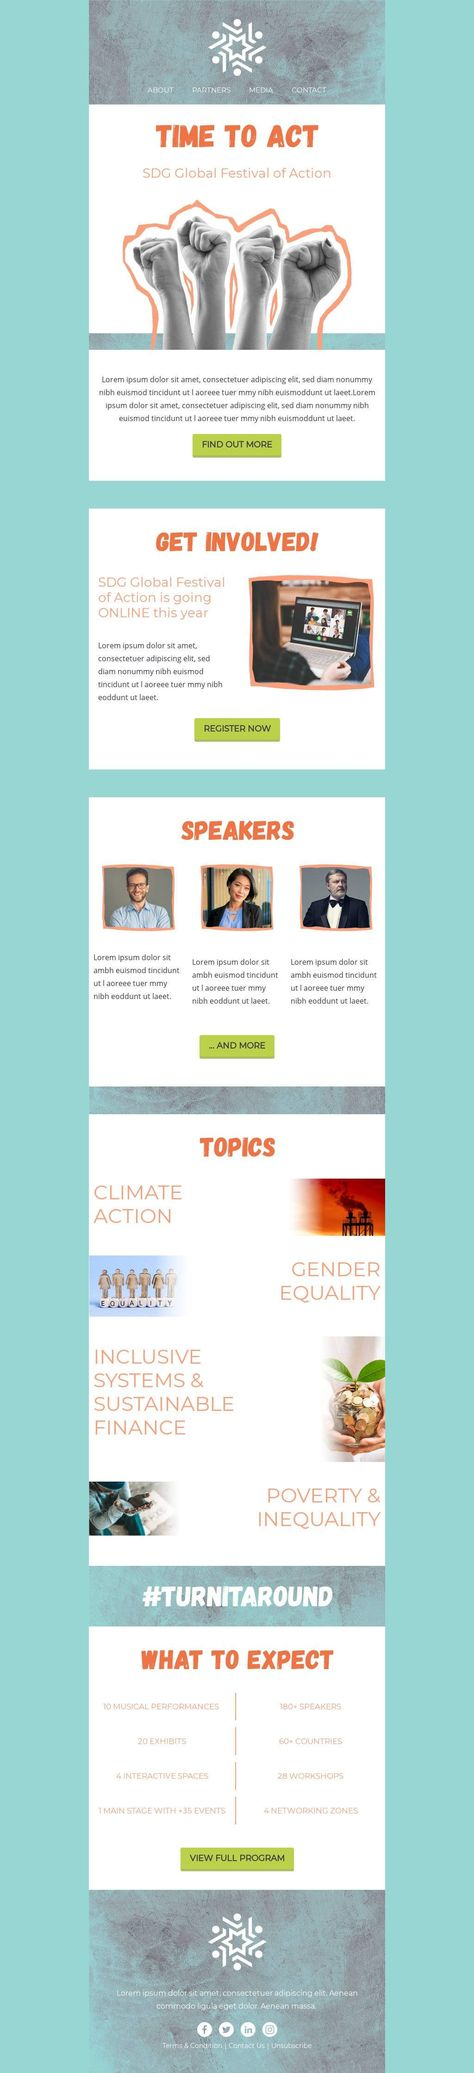 SDG Global Festival Of Action - Email Template